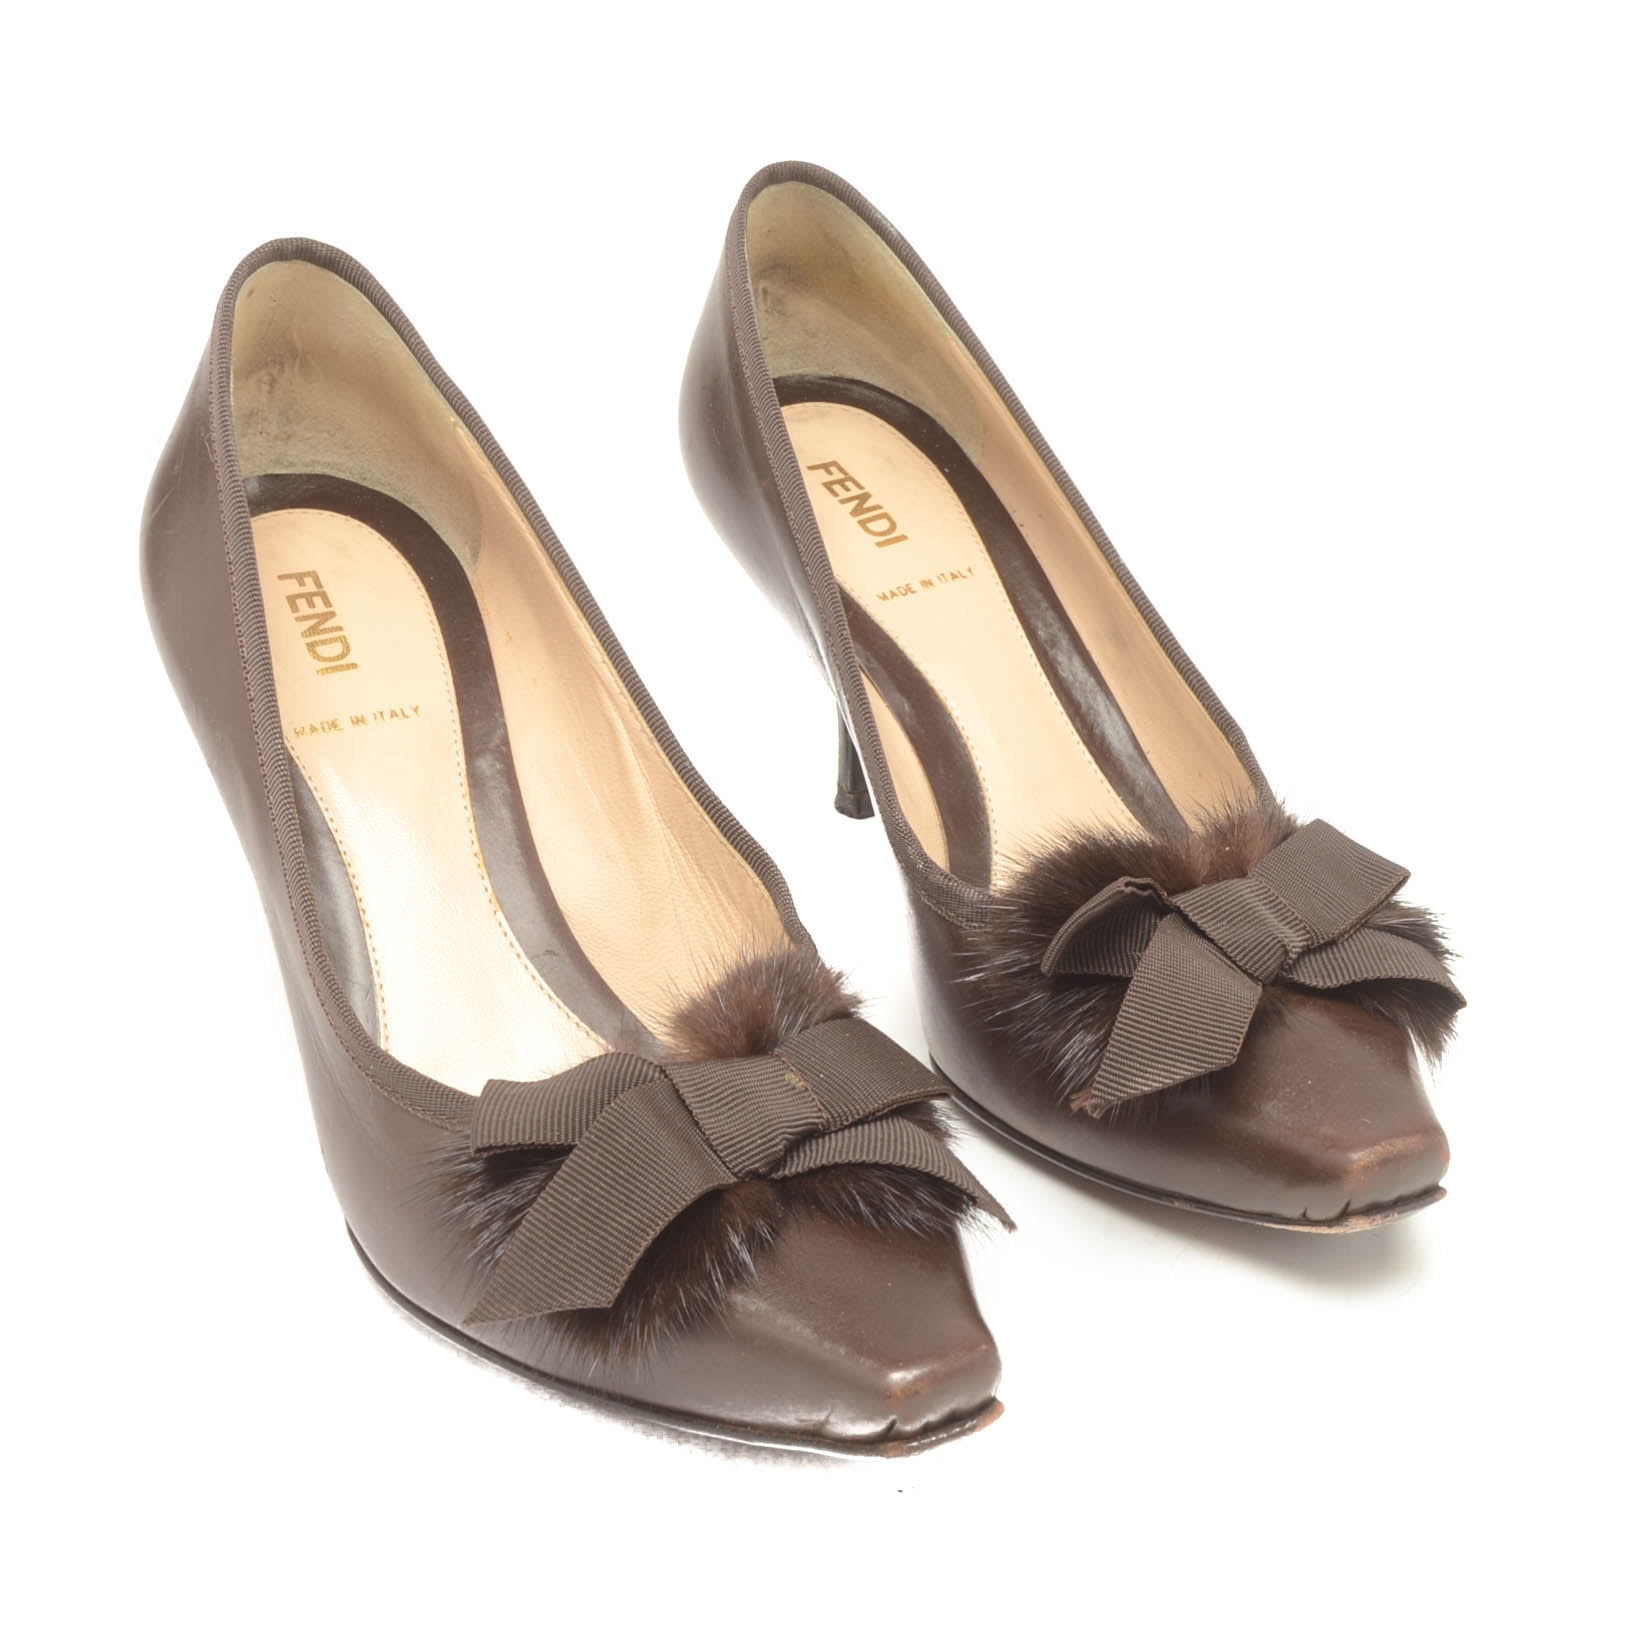 Fendi Brown Leather Pumps Trimmed in Monochromatic Grosgrain Ribbon and Mink Fur